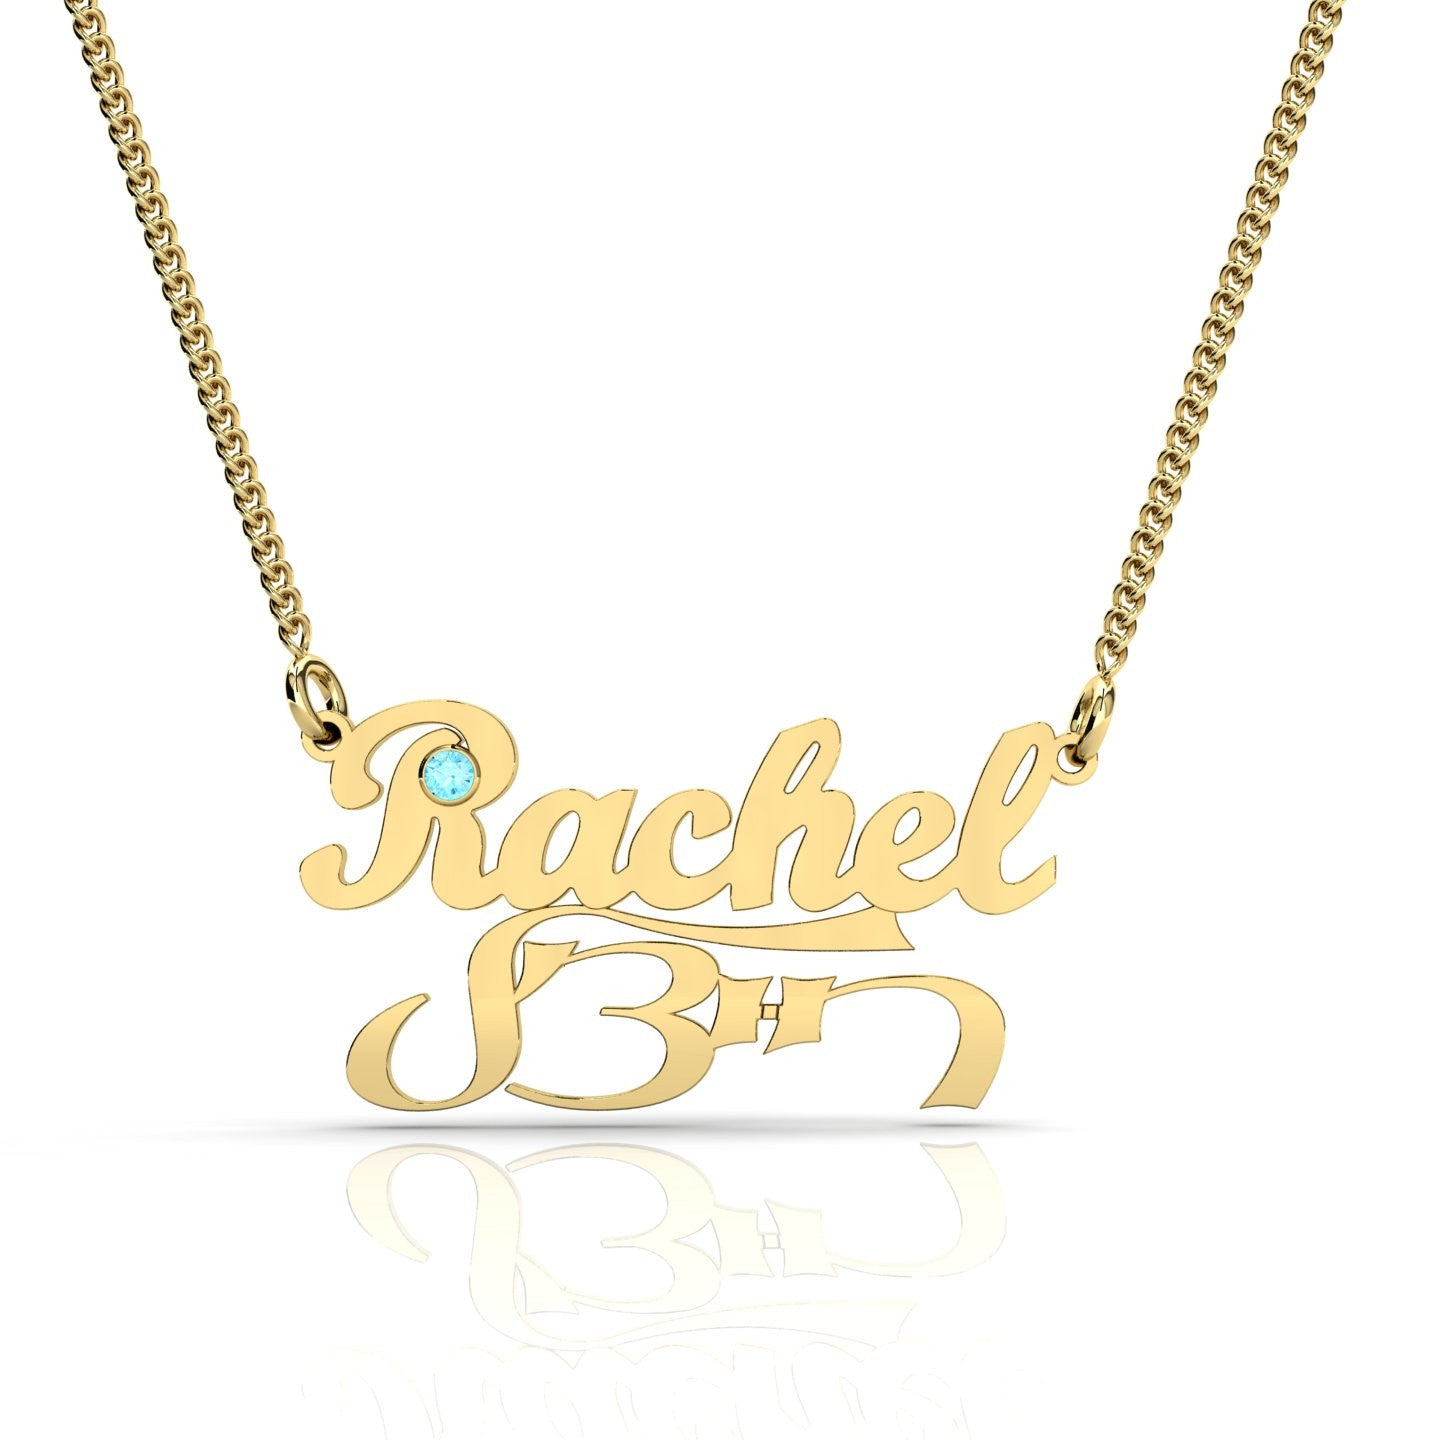 sydney name inspirational heartstrings buchanan fine jewellery and heartstring necklace